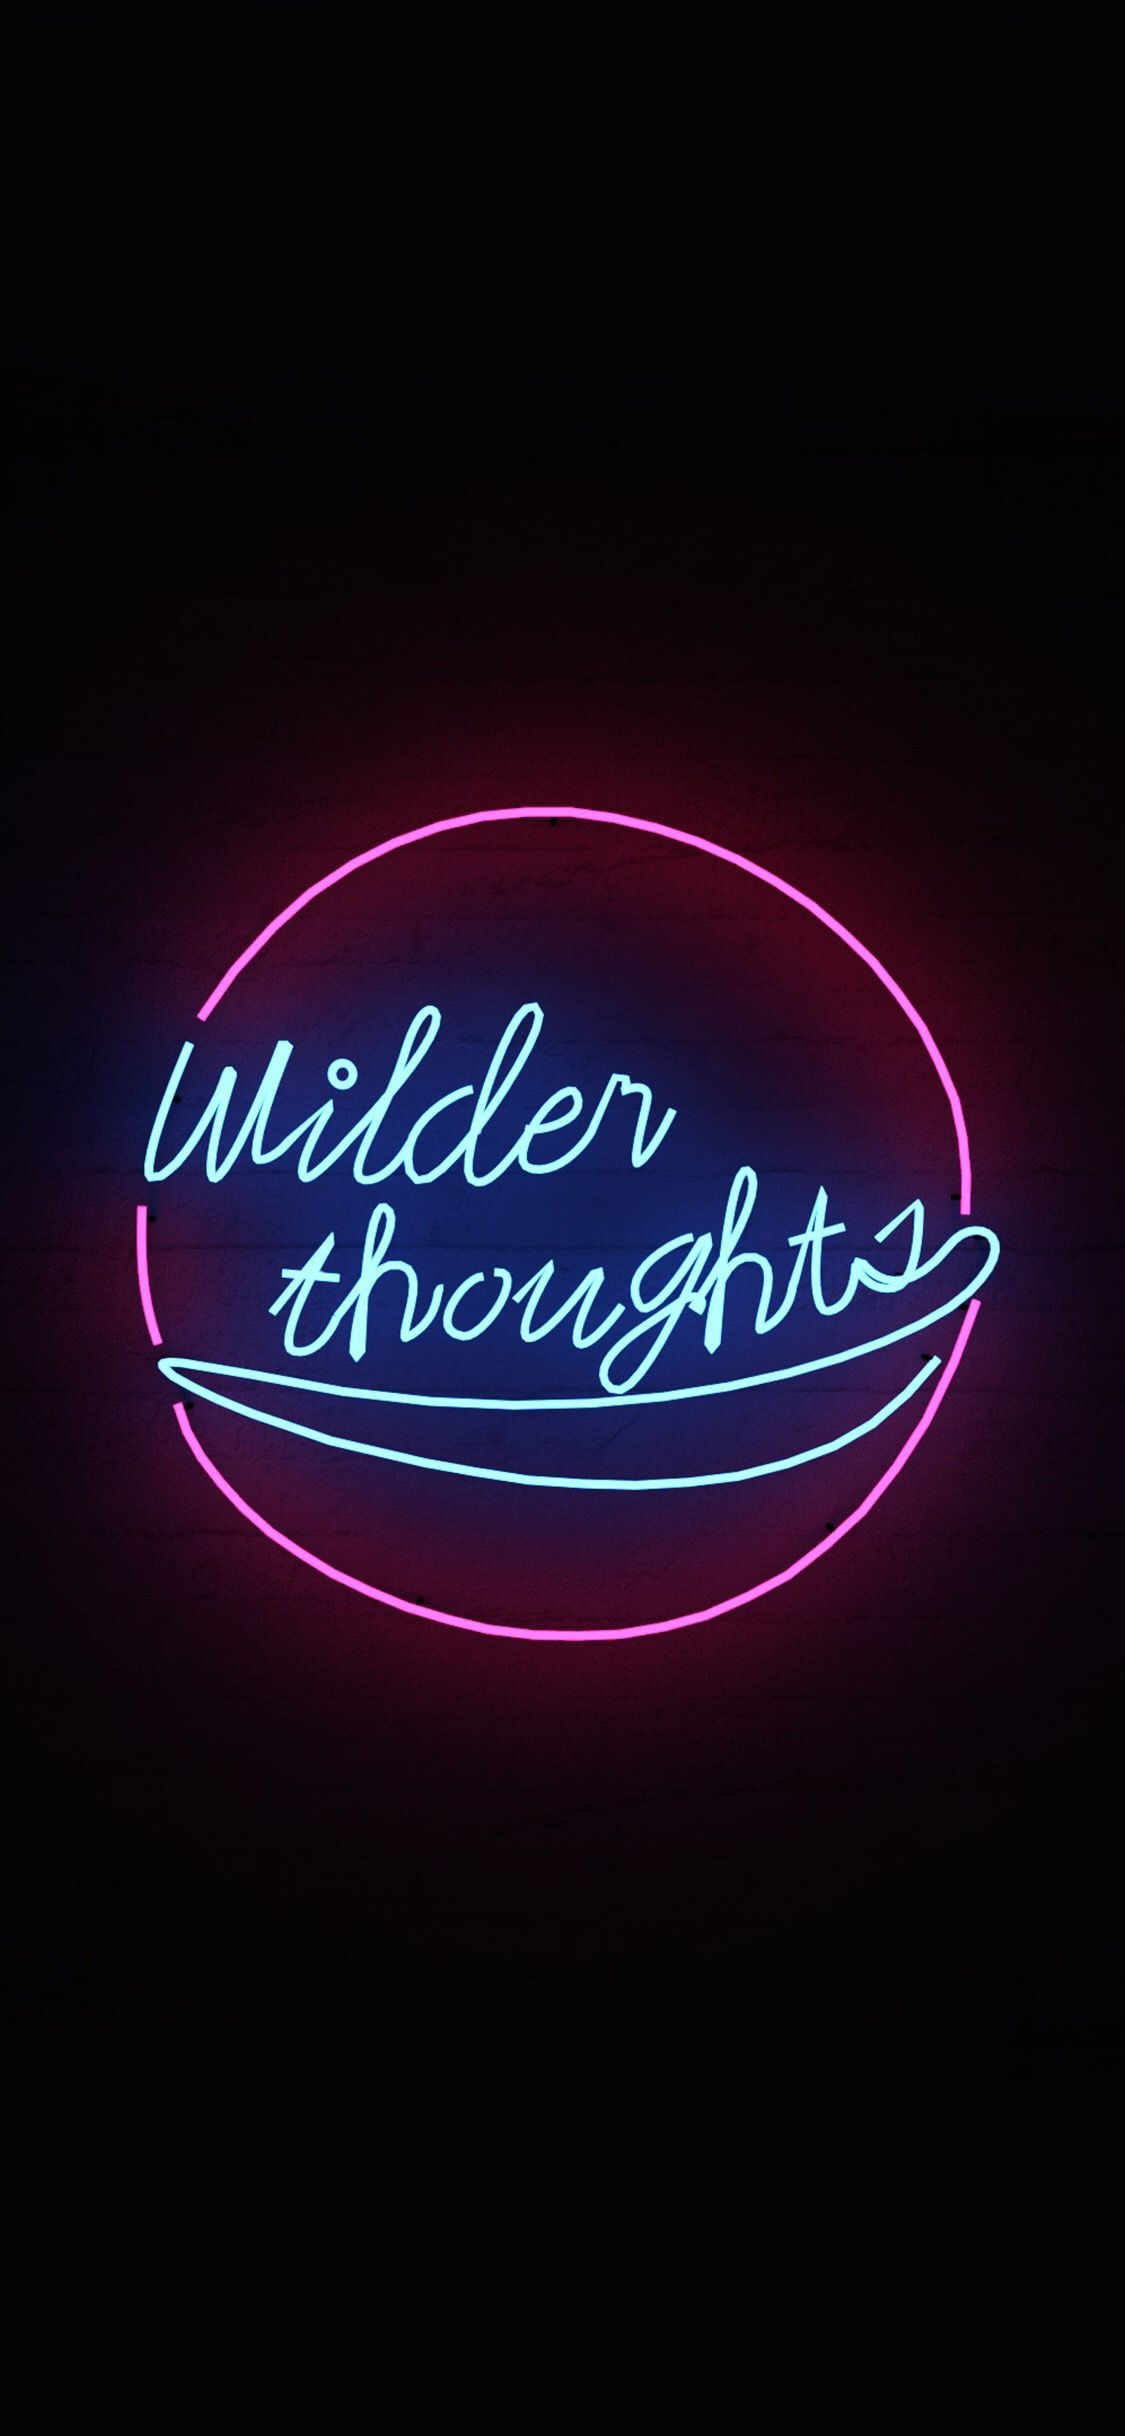 Aesthetic Grunge Neon Signs Wallpapers   Top Aesthetic Grunge 1125x2436